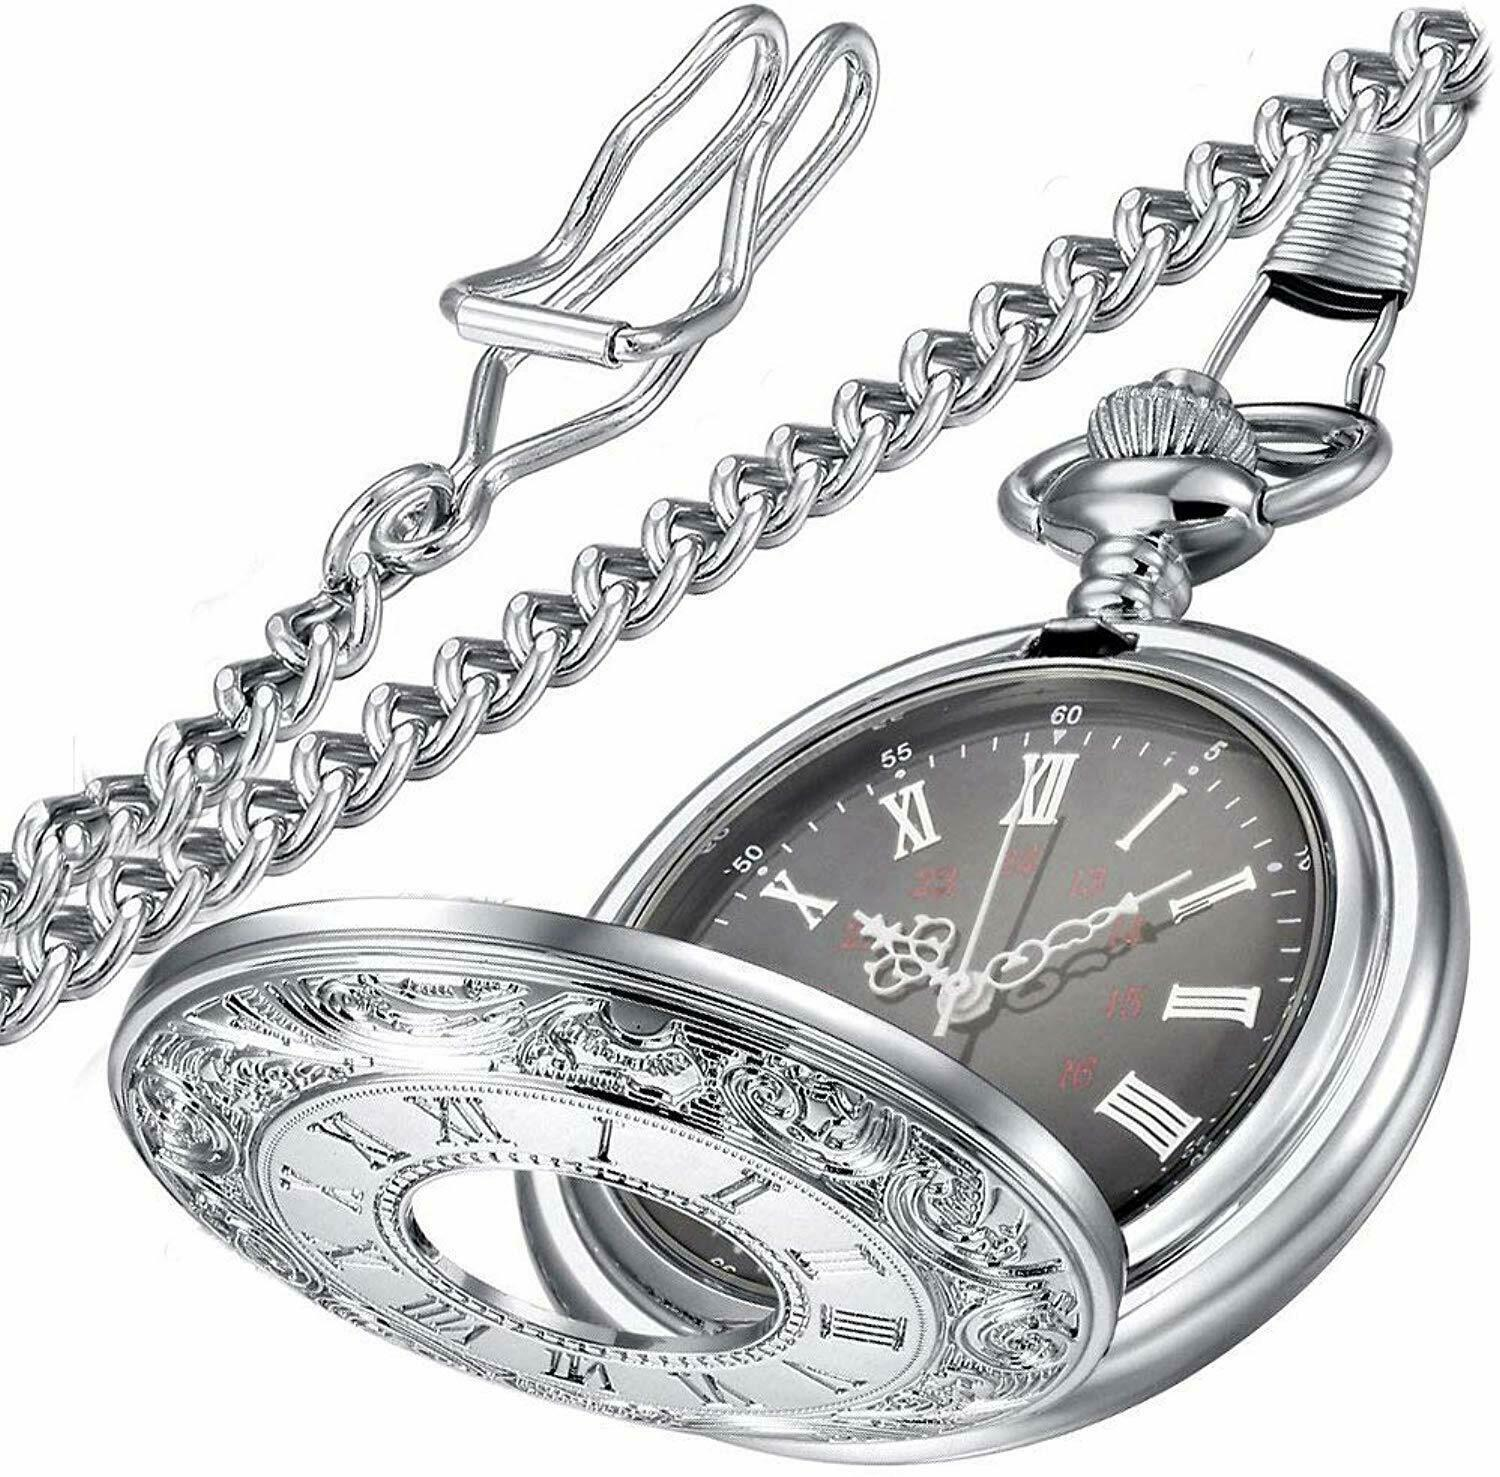 Primary image for Vintage Roman Numerals Quartz Pocket Watch, Men Womens Watch with Chain As Xmas